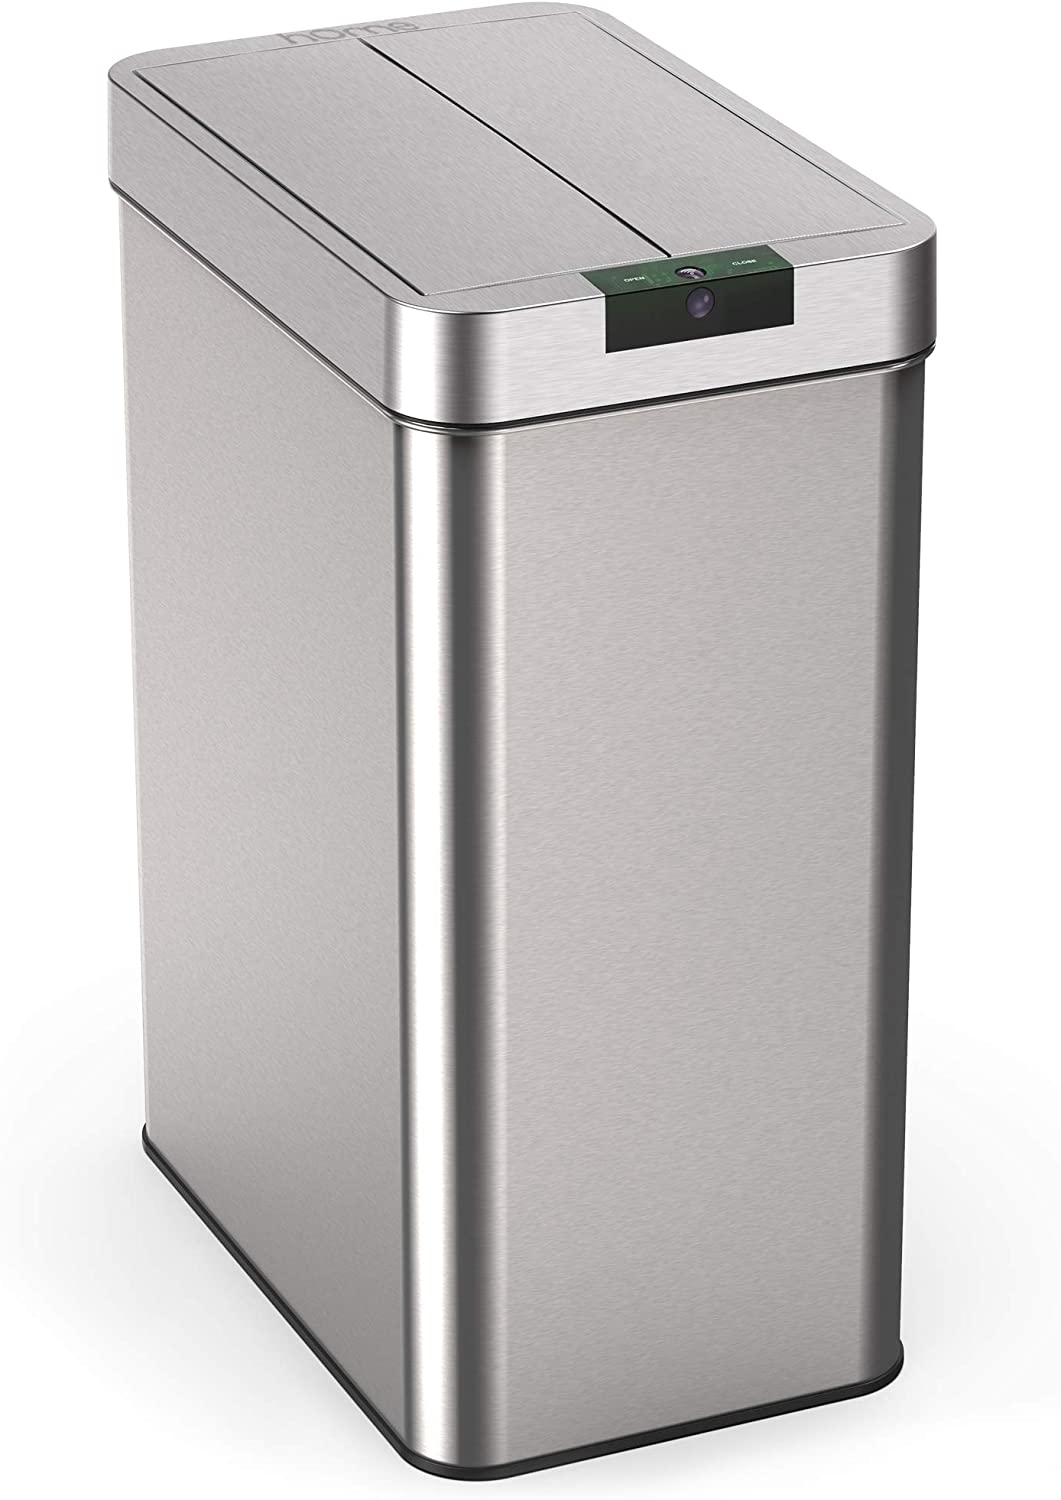 hOmeLabs 13 Gallon Automatic Trash Nippon regular Free shipping / New agency Can S Stainless - for Kitchen